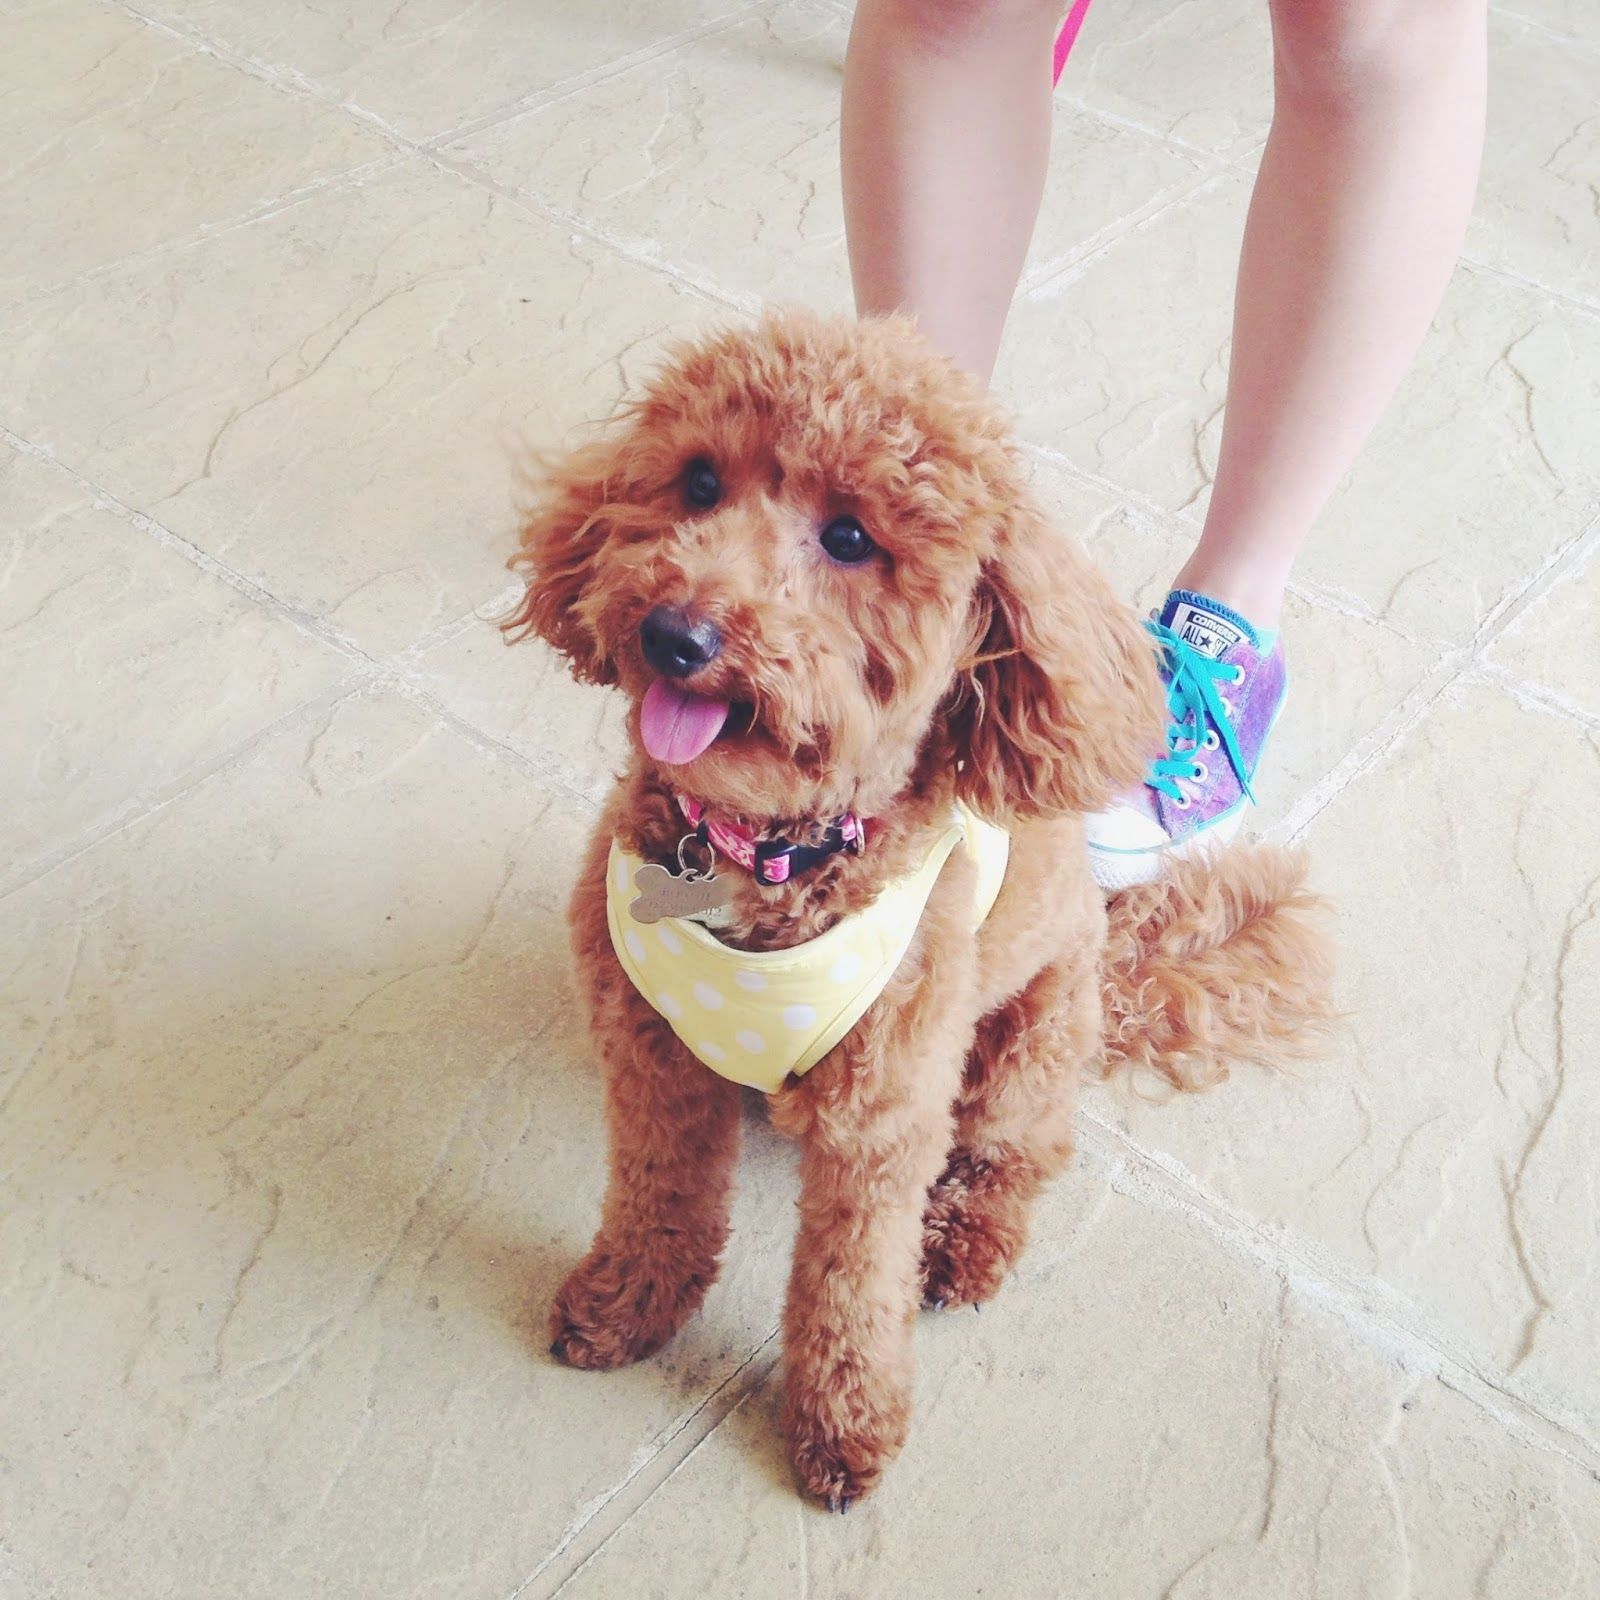 Miniature Poodle Toy Poodle Miniature Poodle Haircut Poodle Haircut Poodle Haircut Dog Haircuts Toy Poodle